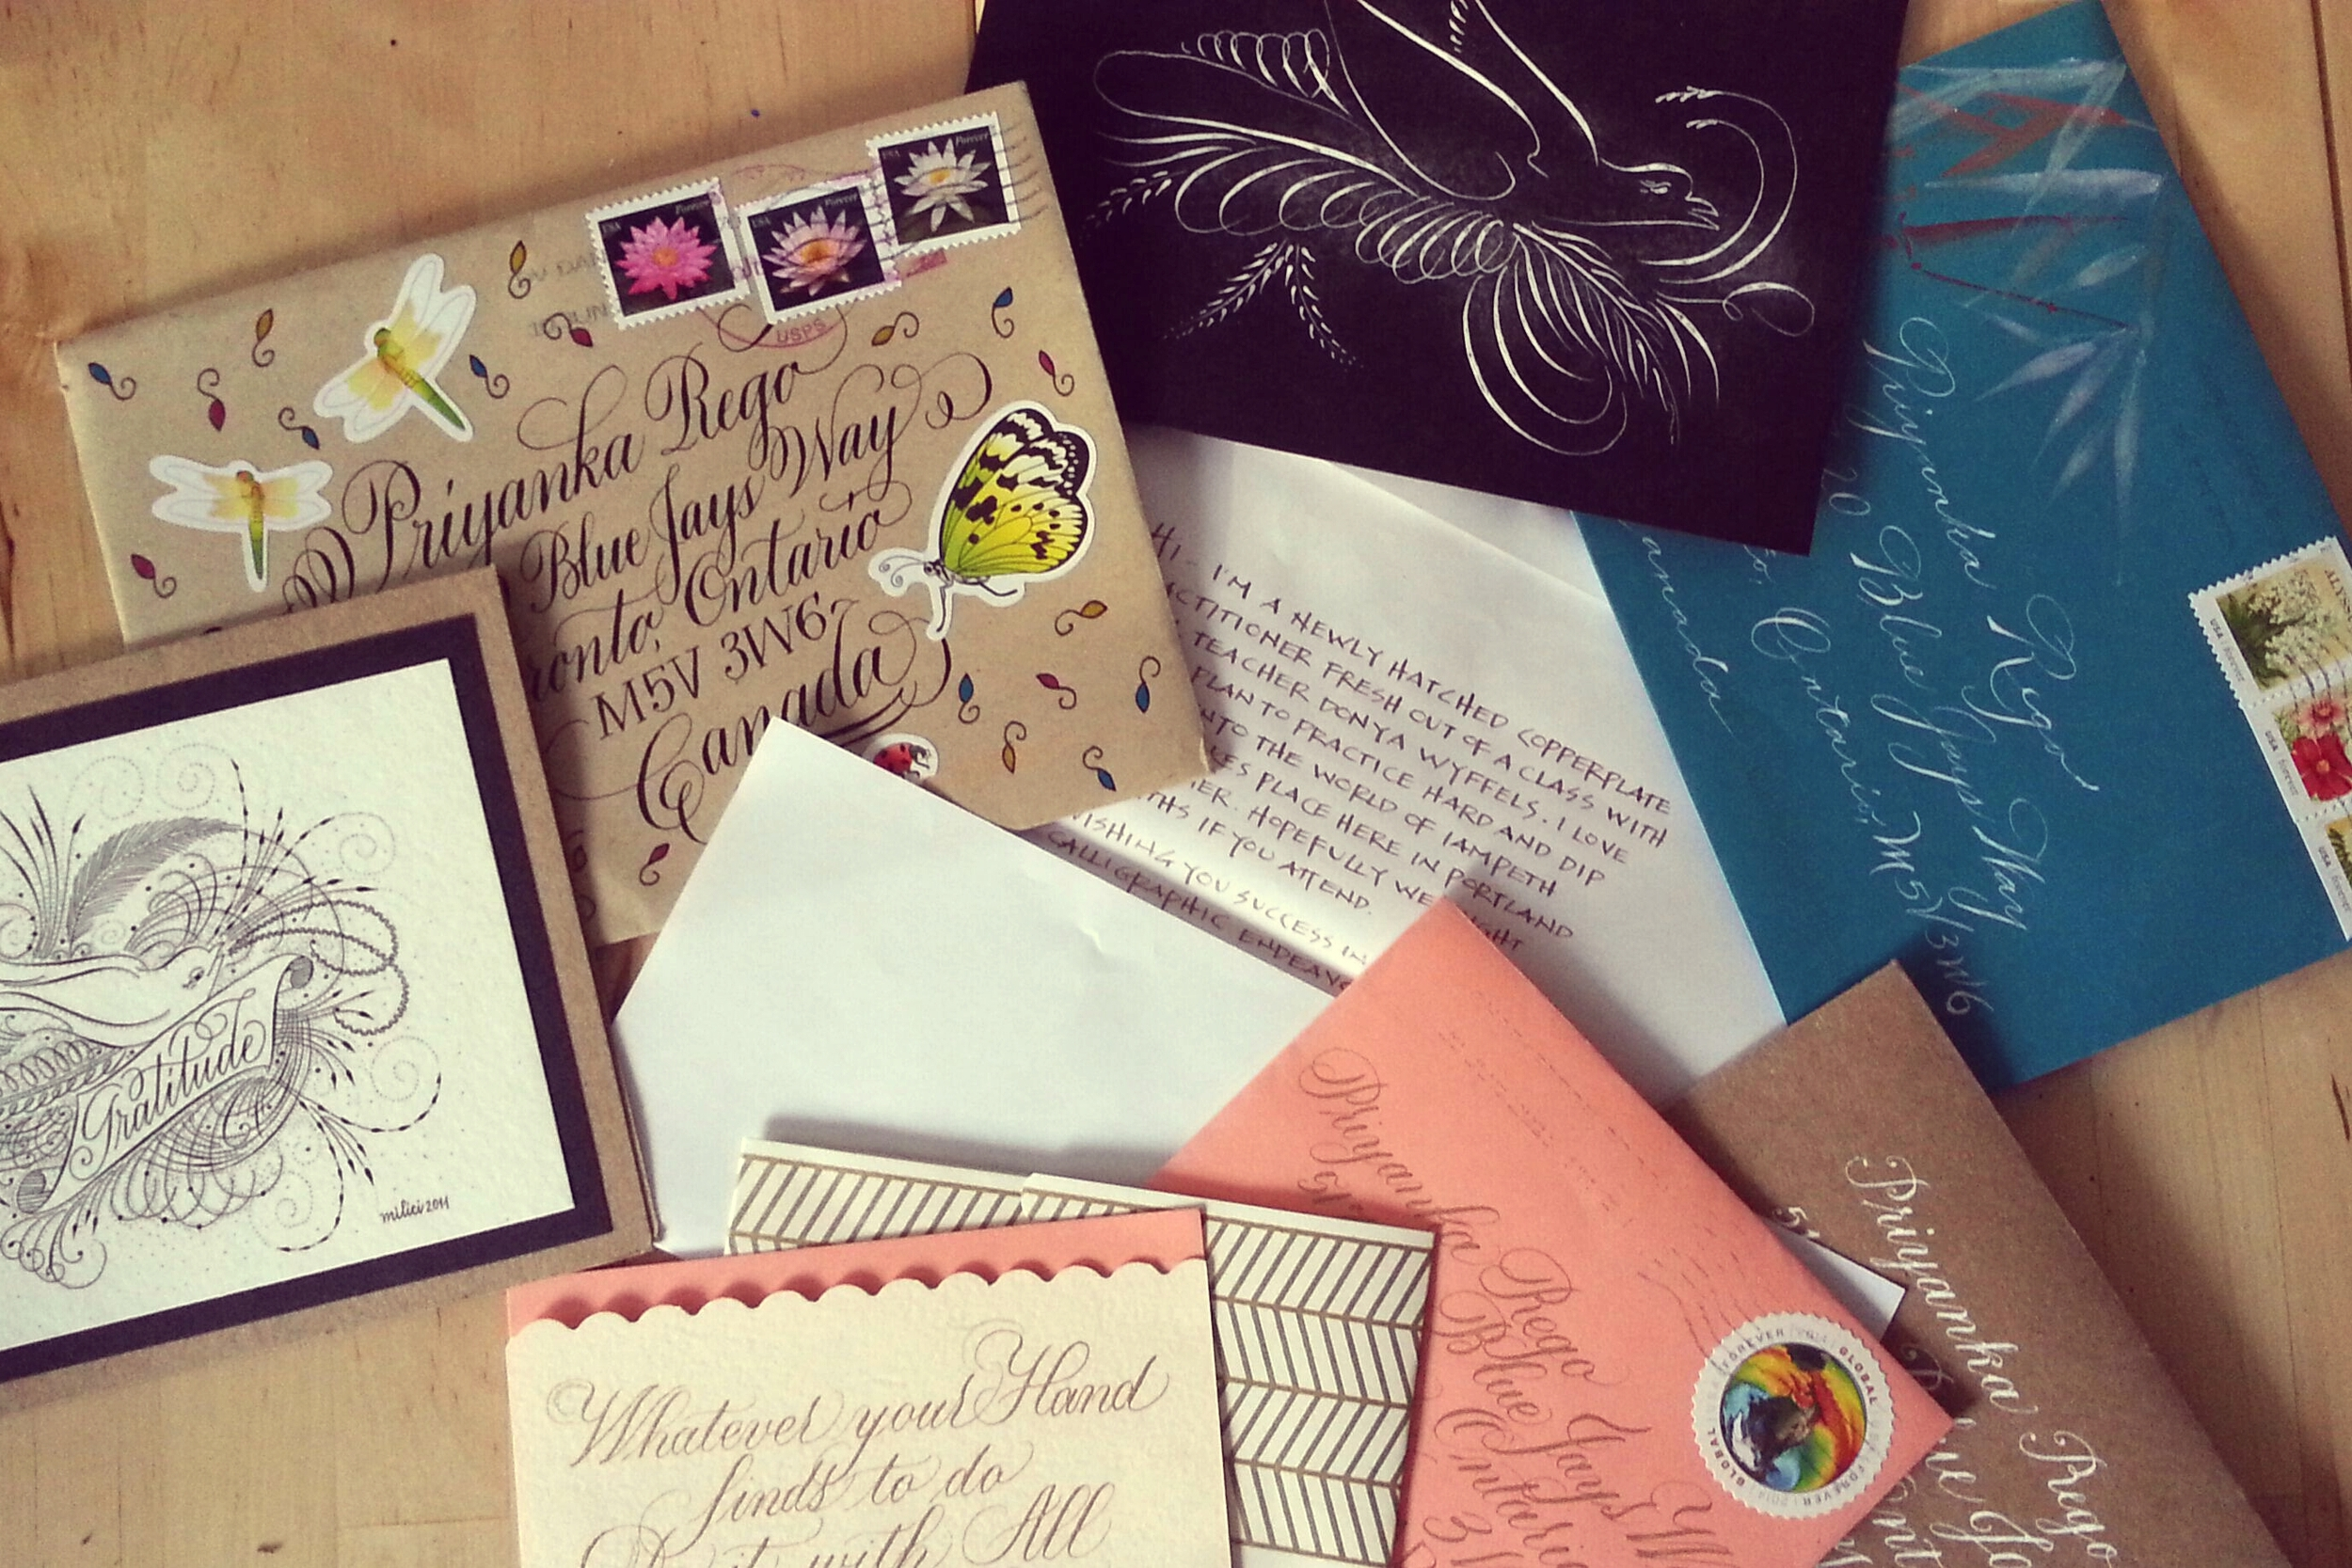 Envelopes from IAMPETH envelope exchange 2015